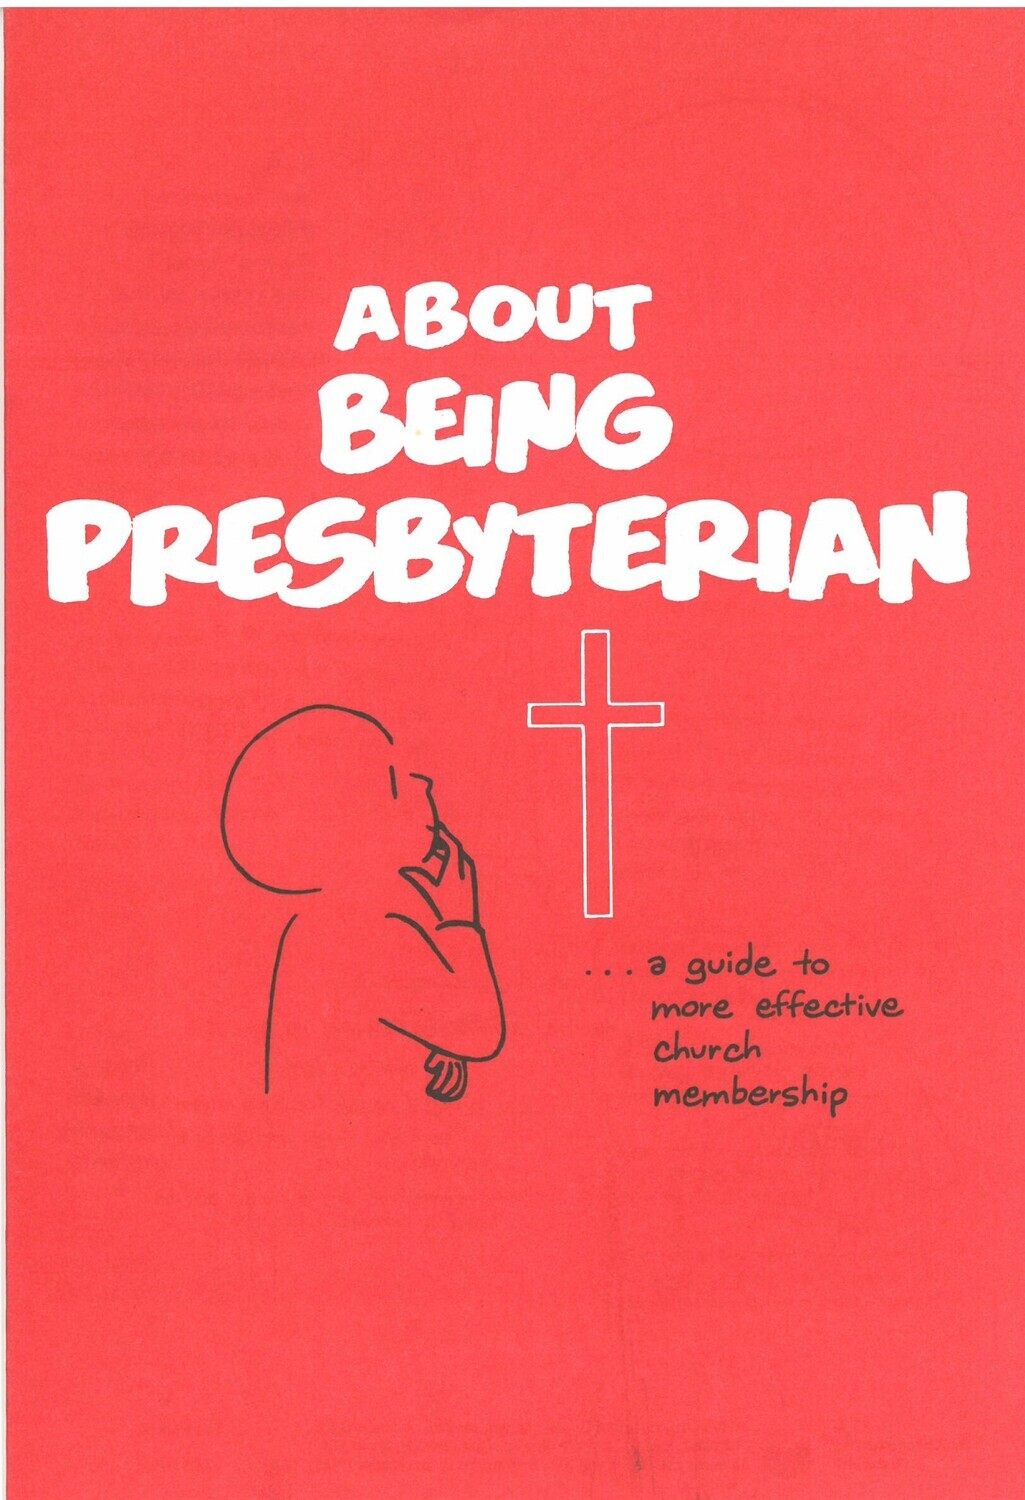 About Being Presbyterian scriptographic PC(USA)